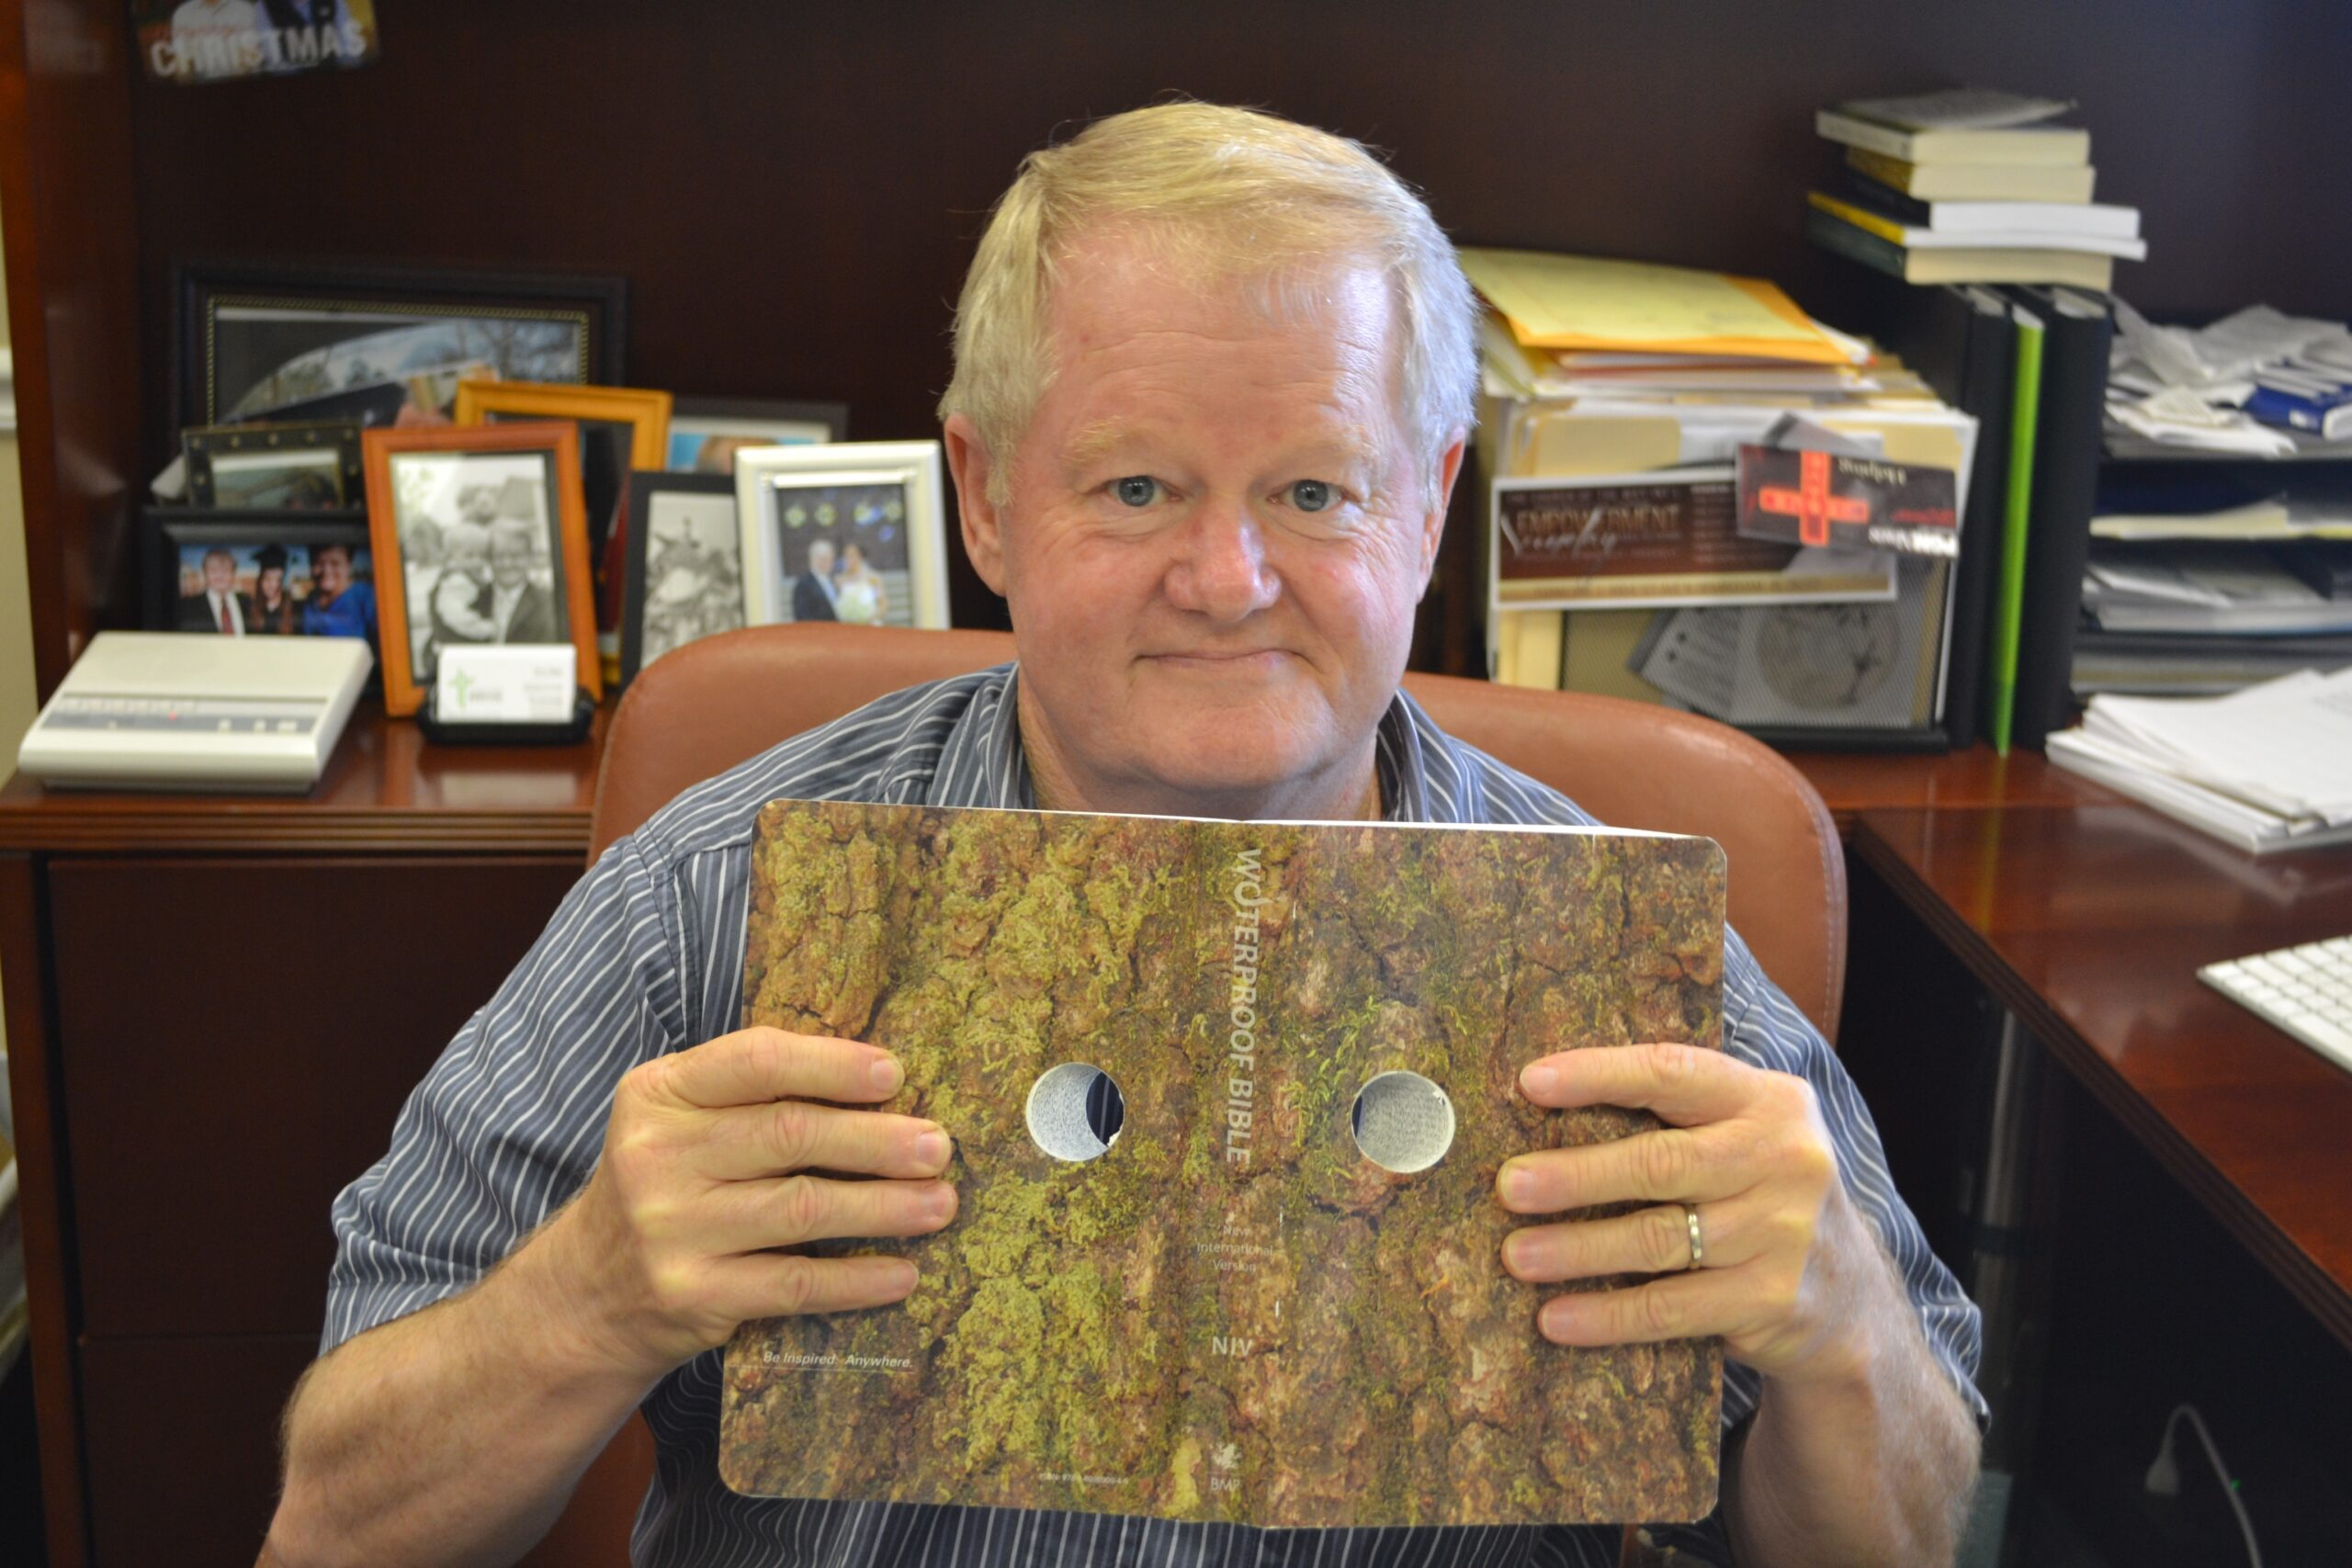 Tracy uses this Bible with eye-holes drilled in to remind him to look at the world through the lens of scripture and not through his own eyes.